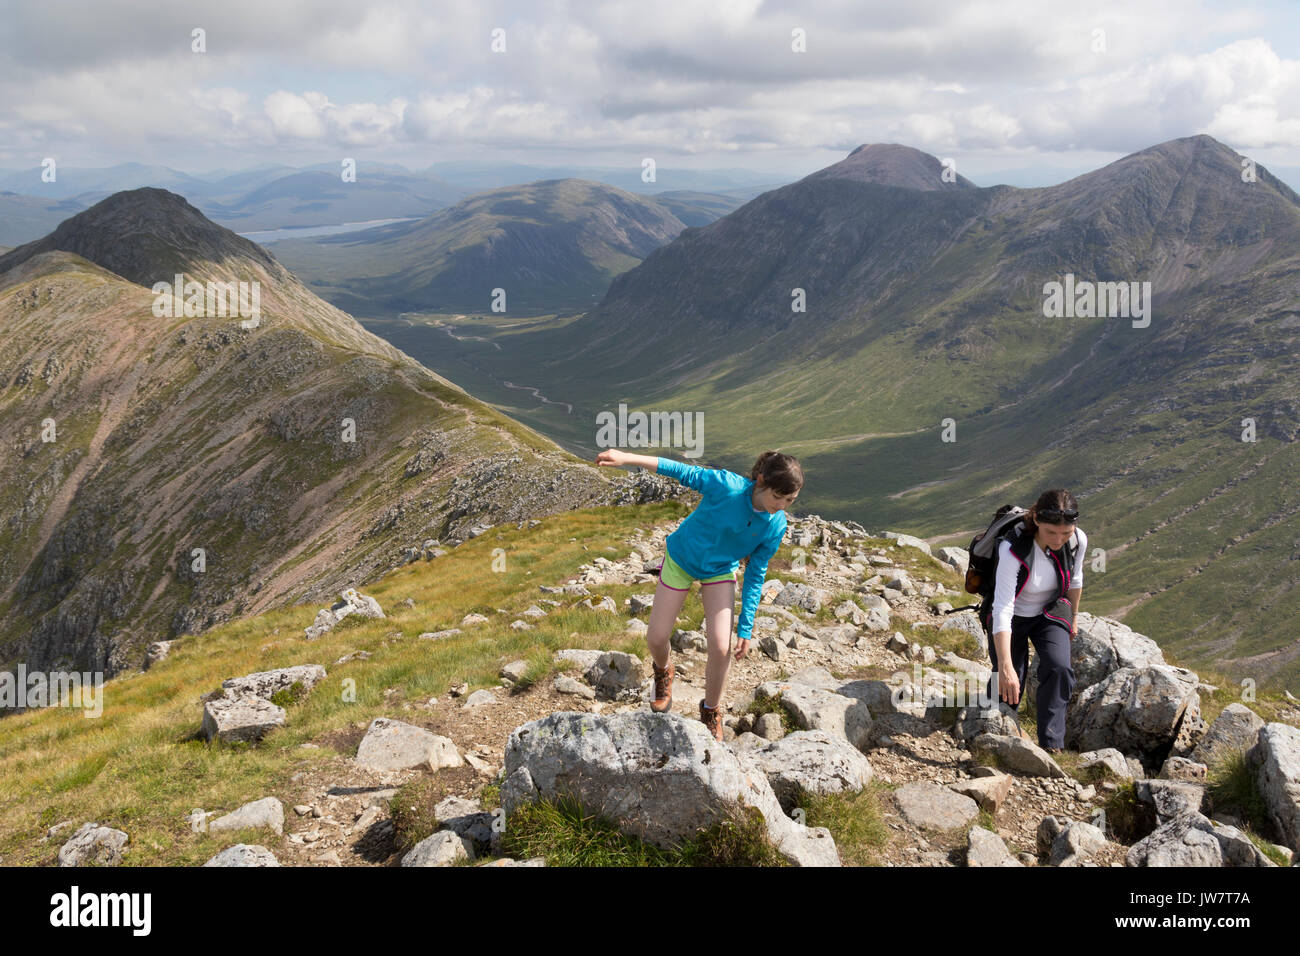 Rambling in Glencoe, Highland Scotland - Stock Image